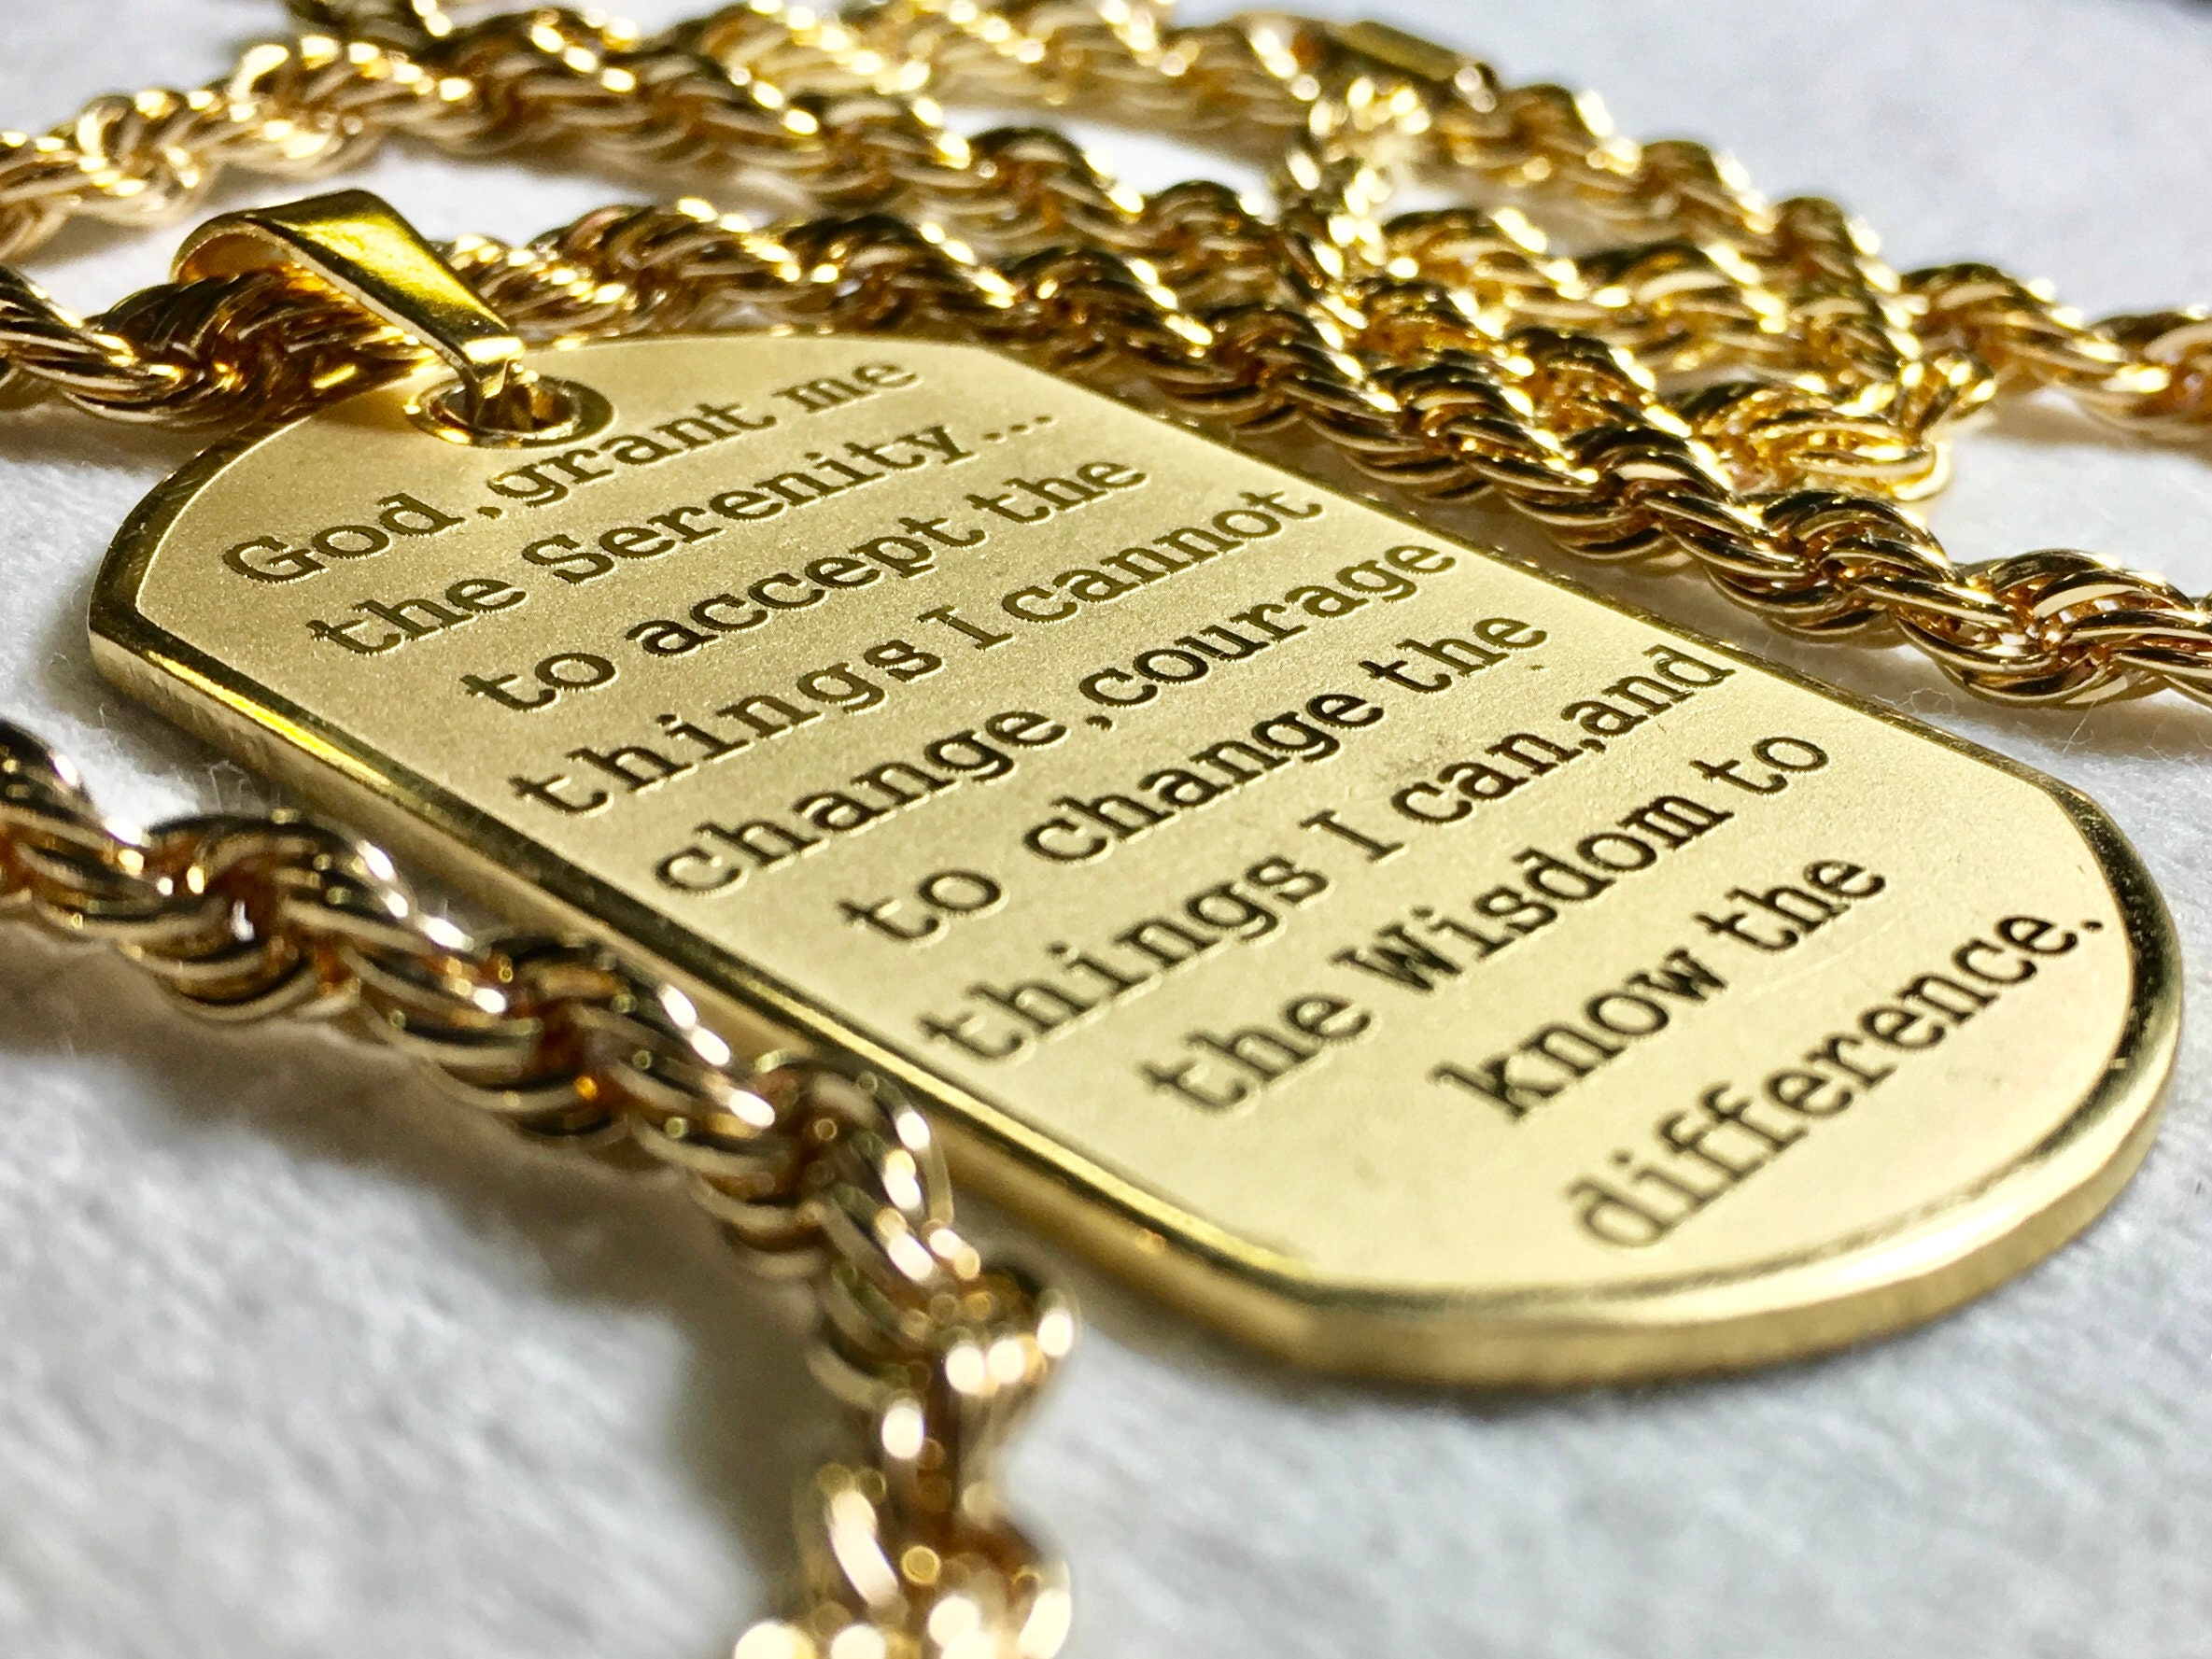 c27f59c7a585 Raised Lettering Serenity Prayer Necklace Dog Tag Silver Gold Thick ...